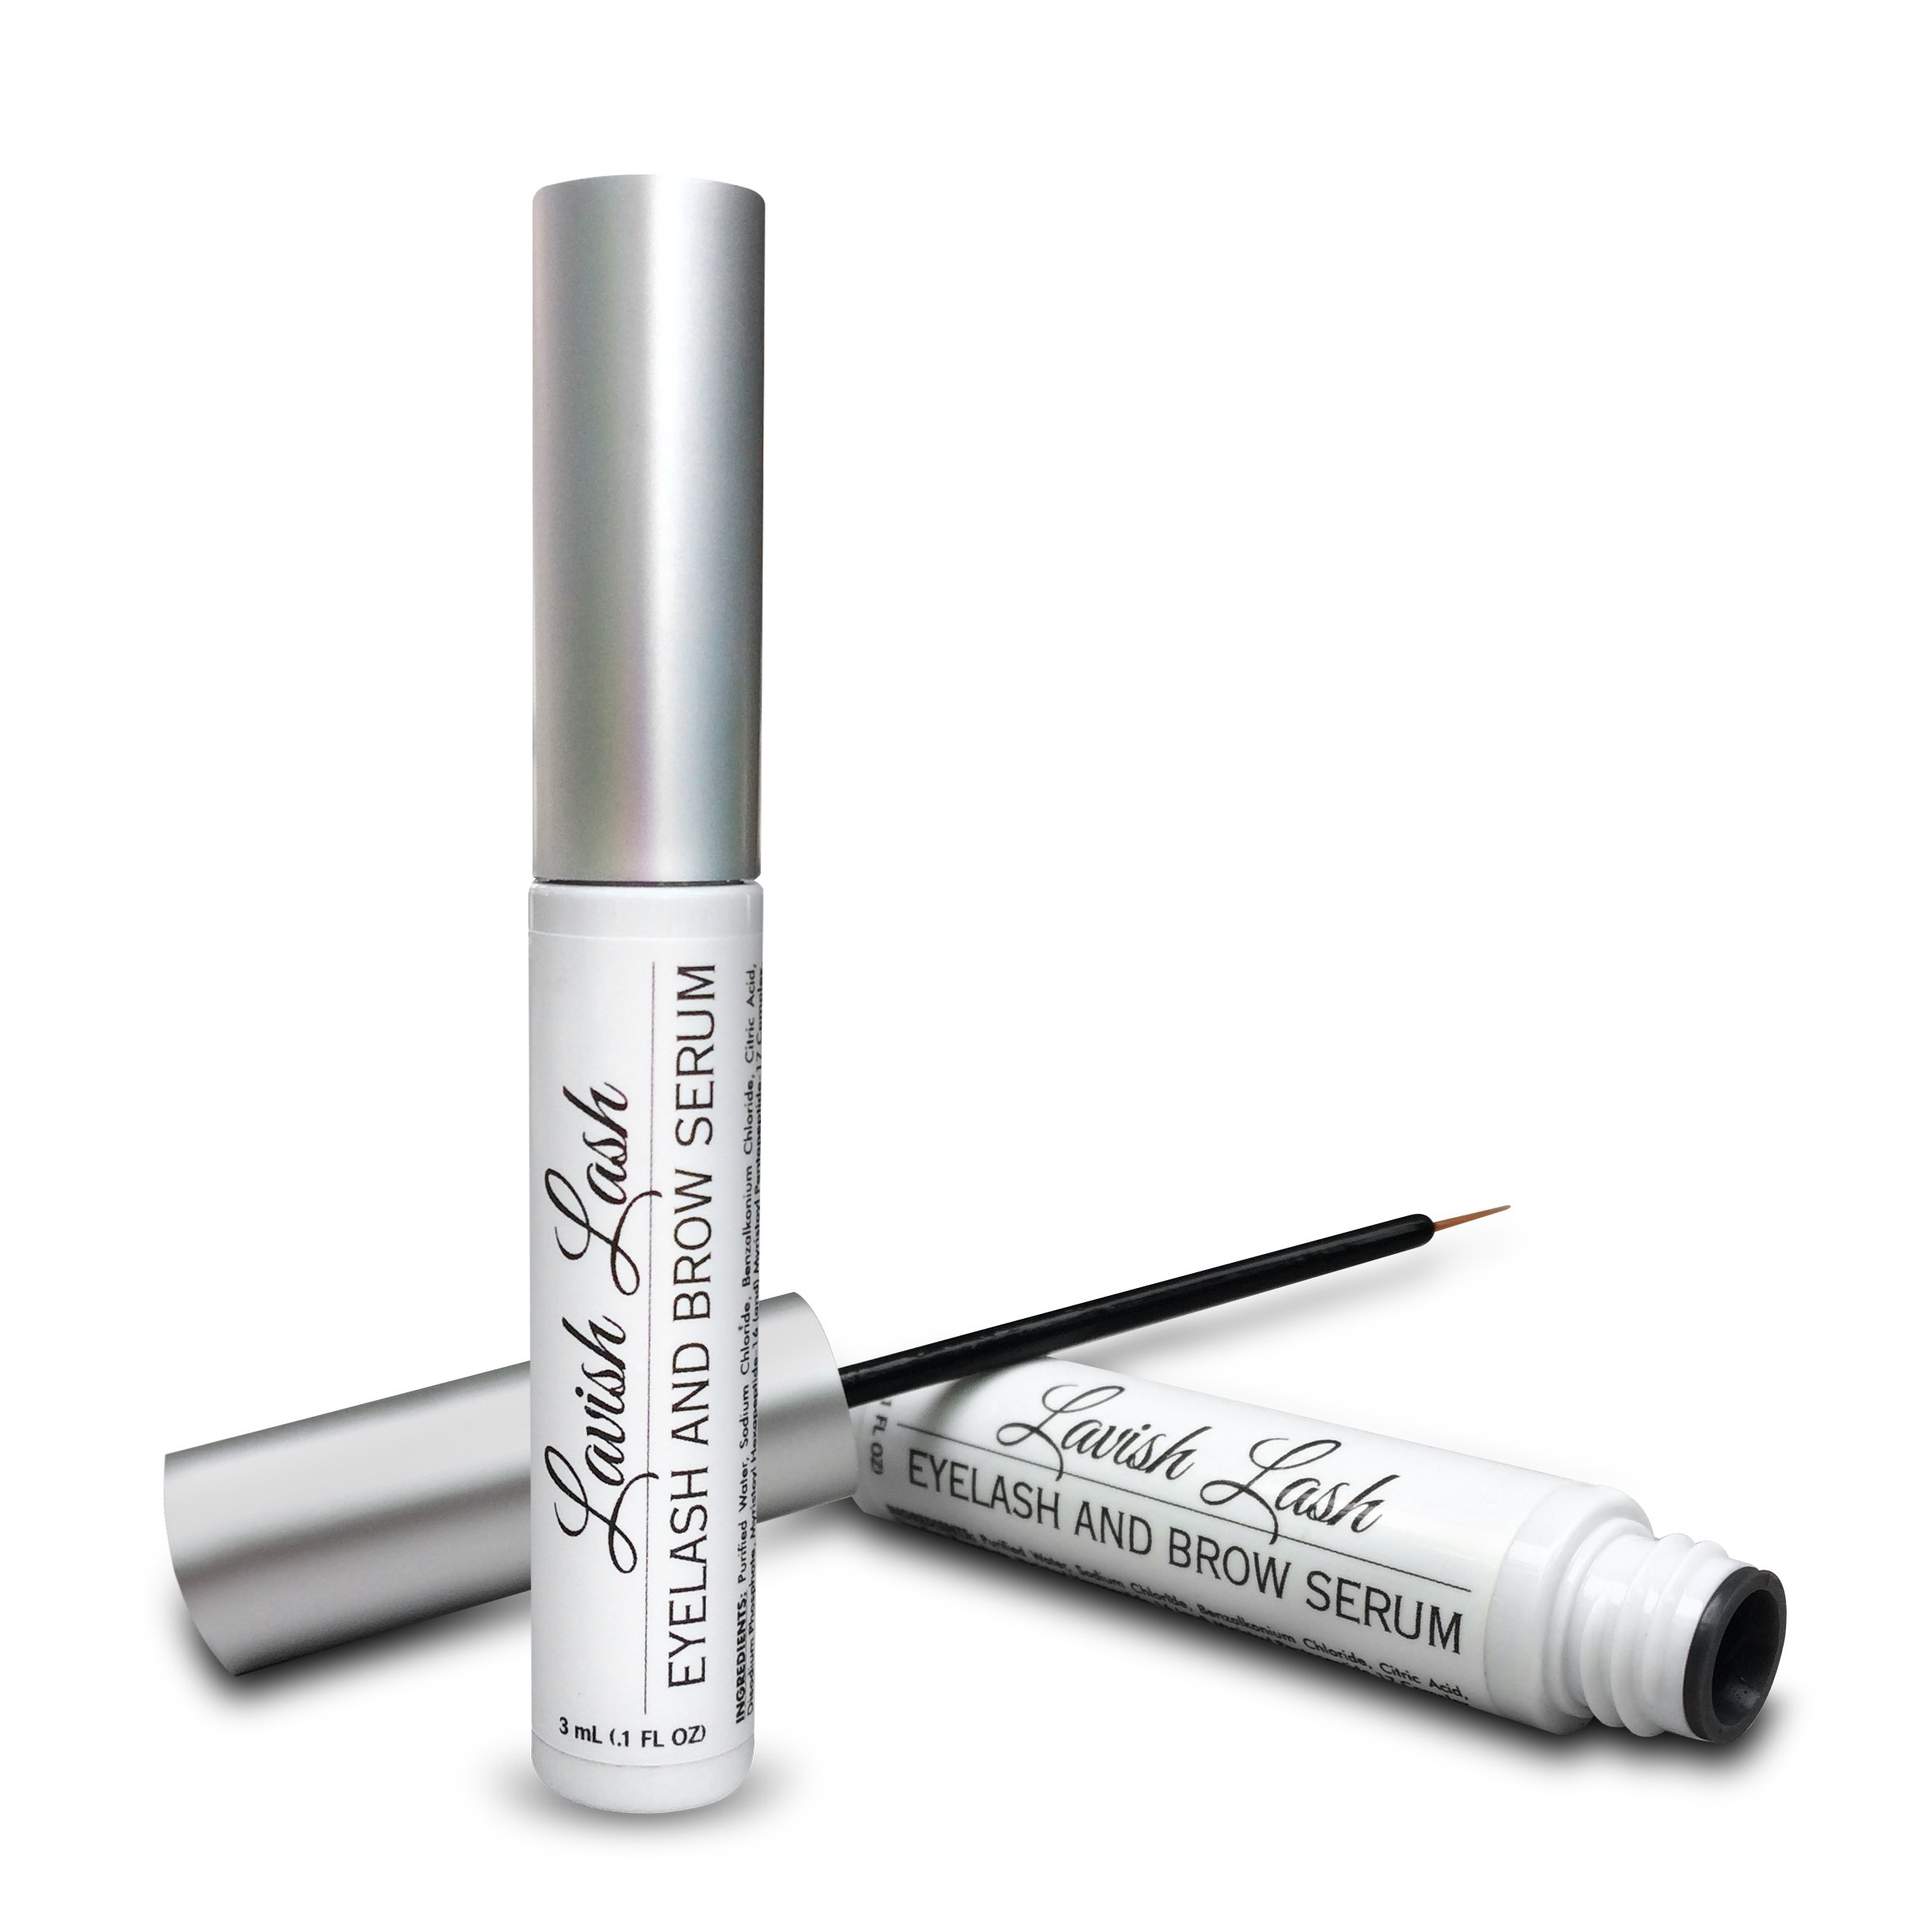 Pronexa Hairgenics Lavish Lash - Eyelash Growth Enhancer & Brow Serum with Biotin & Natural Growth Peptides for Long, Thick Looking Lashes and Eyebrows! Dermatologist Certified & Hypoallergenic. by Pronexa